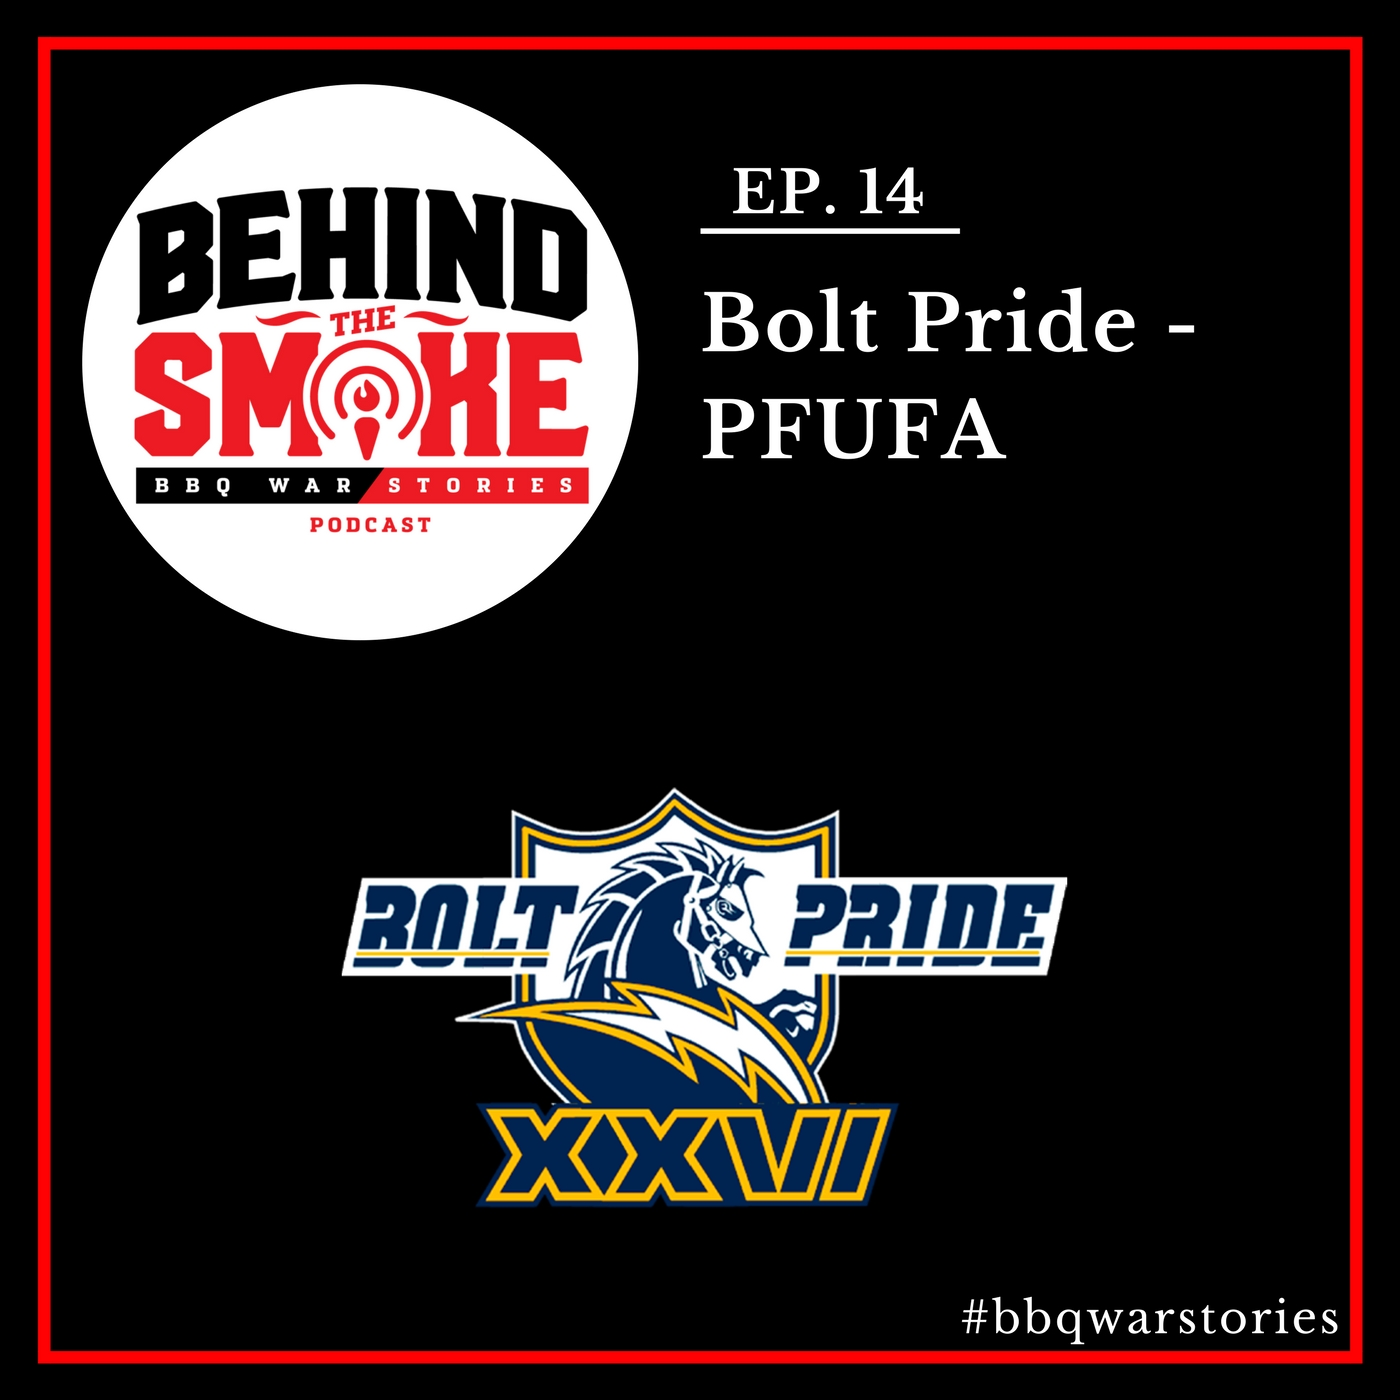 Artwork for #014 - Pro Football Hall of Fame 2017 PFUFA Weekend - Bolt Pride